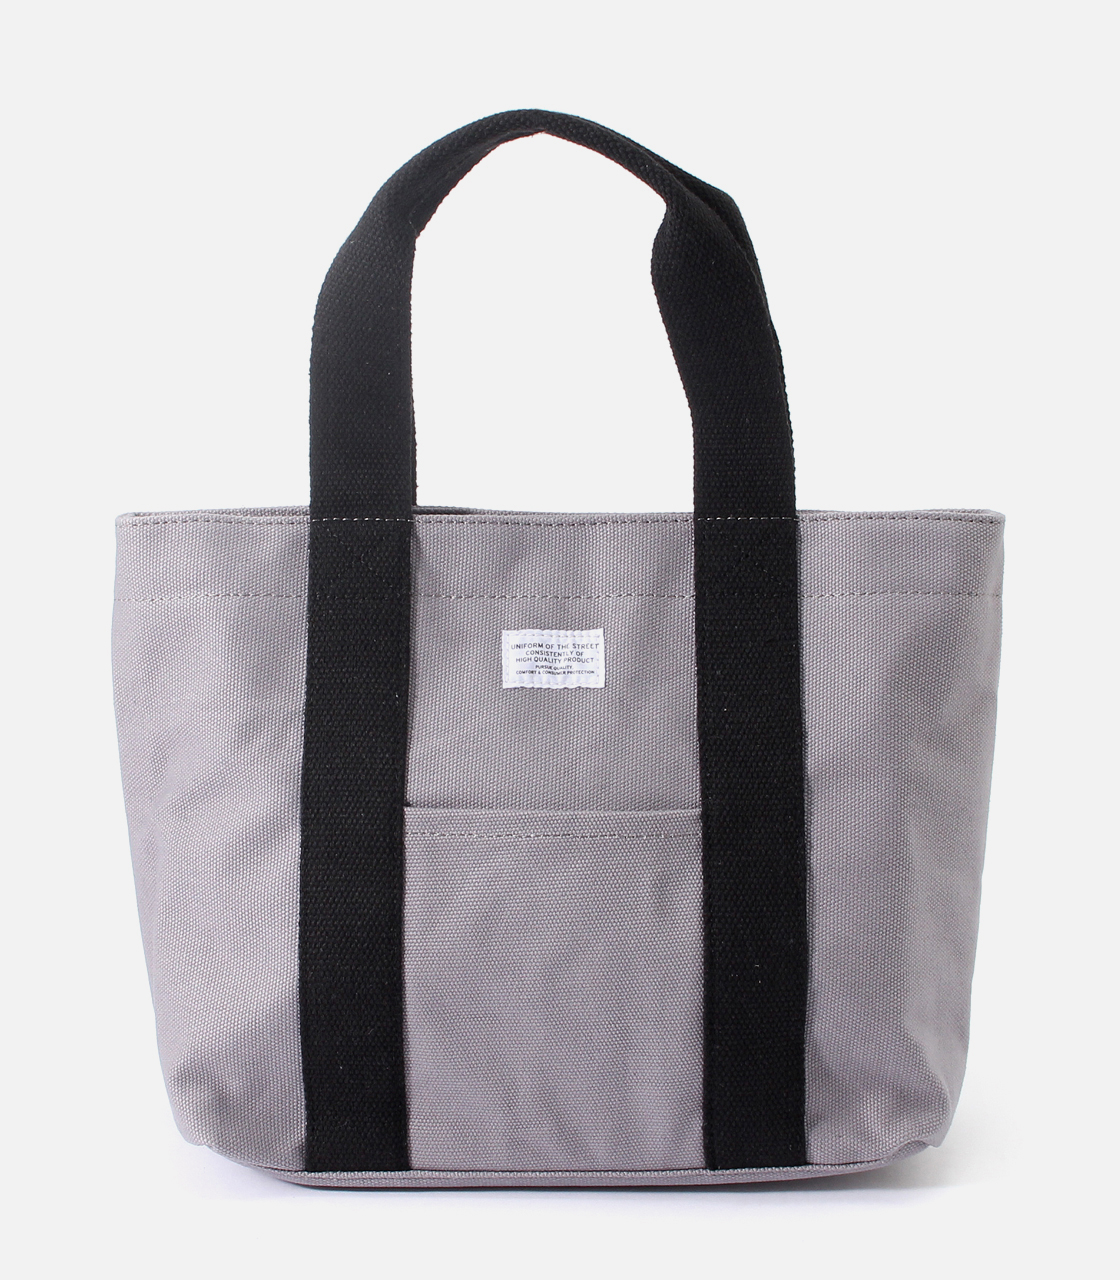 CAMPUS MINI TOTE BAG/キャンバスミニトートバッグ 詳細画像 C.GRY 1